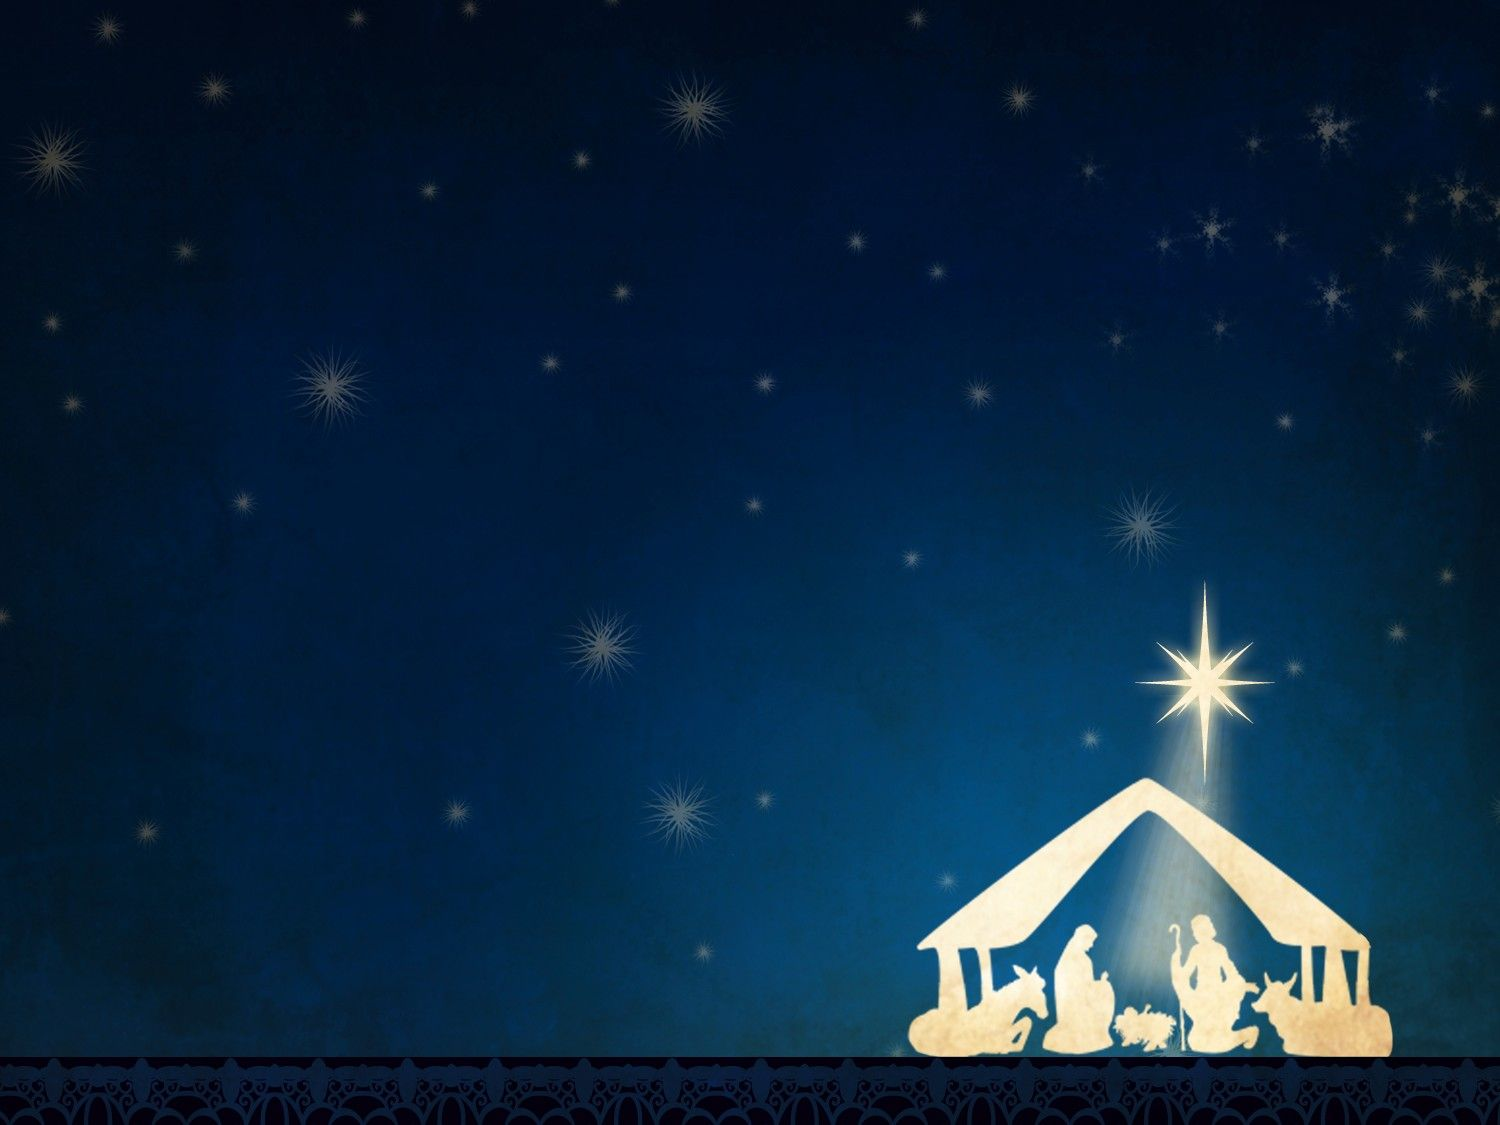 Bethlehem background clipart svg library library Christmas Bethlehem Wallpapers - Wallpaper Cave svg library library